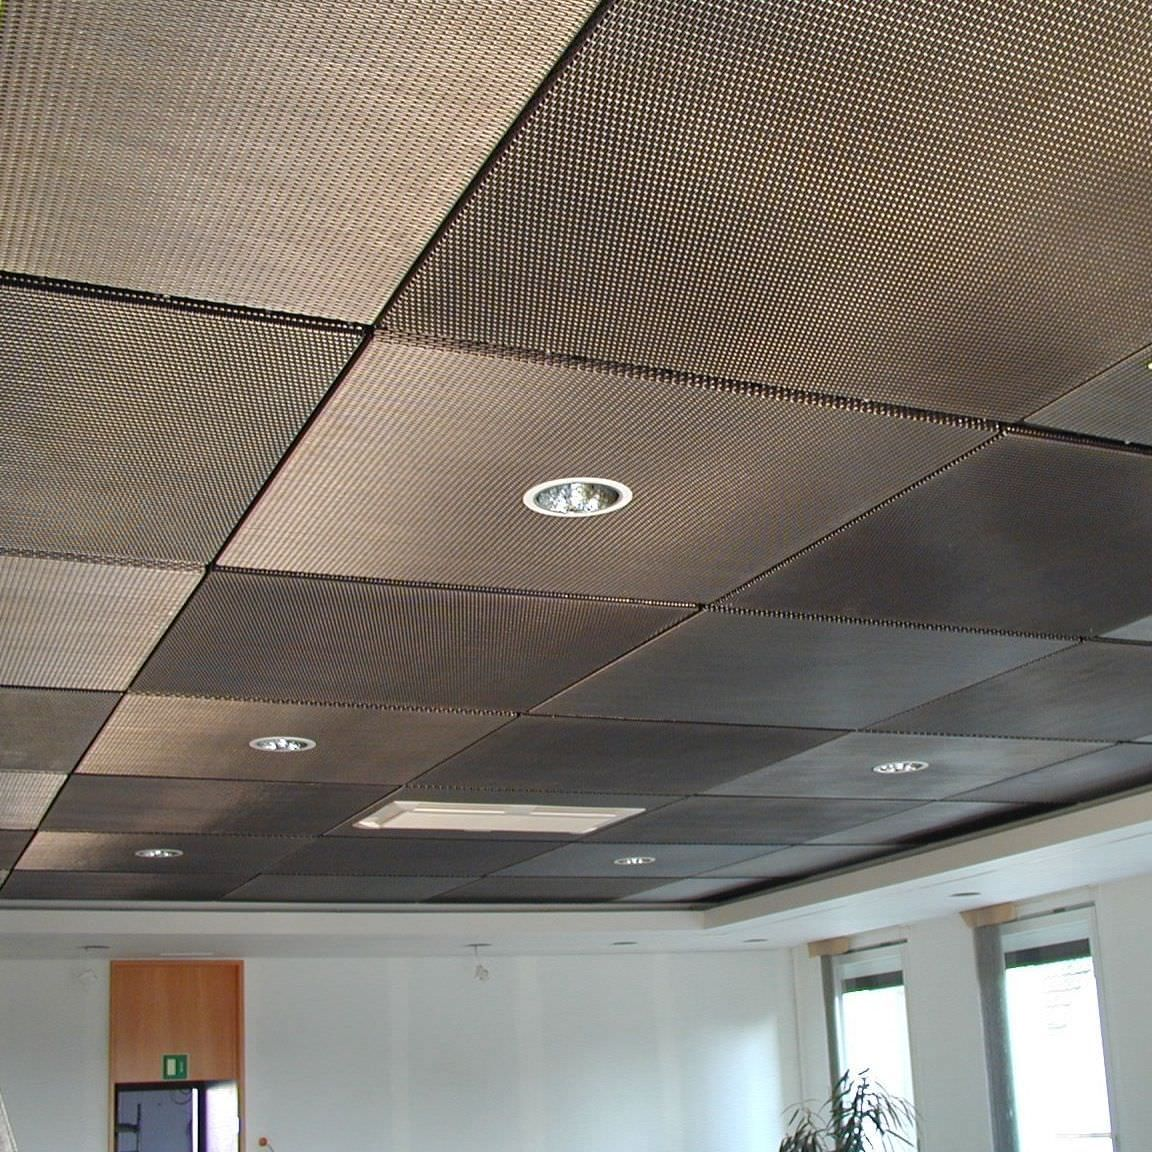 Acoustic Suspended Ceiling Stainless Steel Wire Mesh Egla Twin 4243 Haver Boecker Ohg